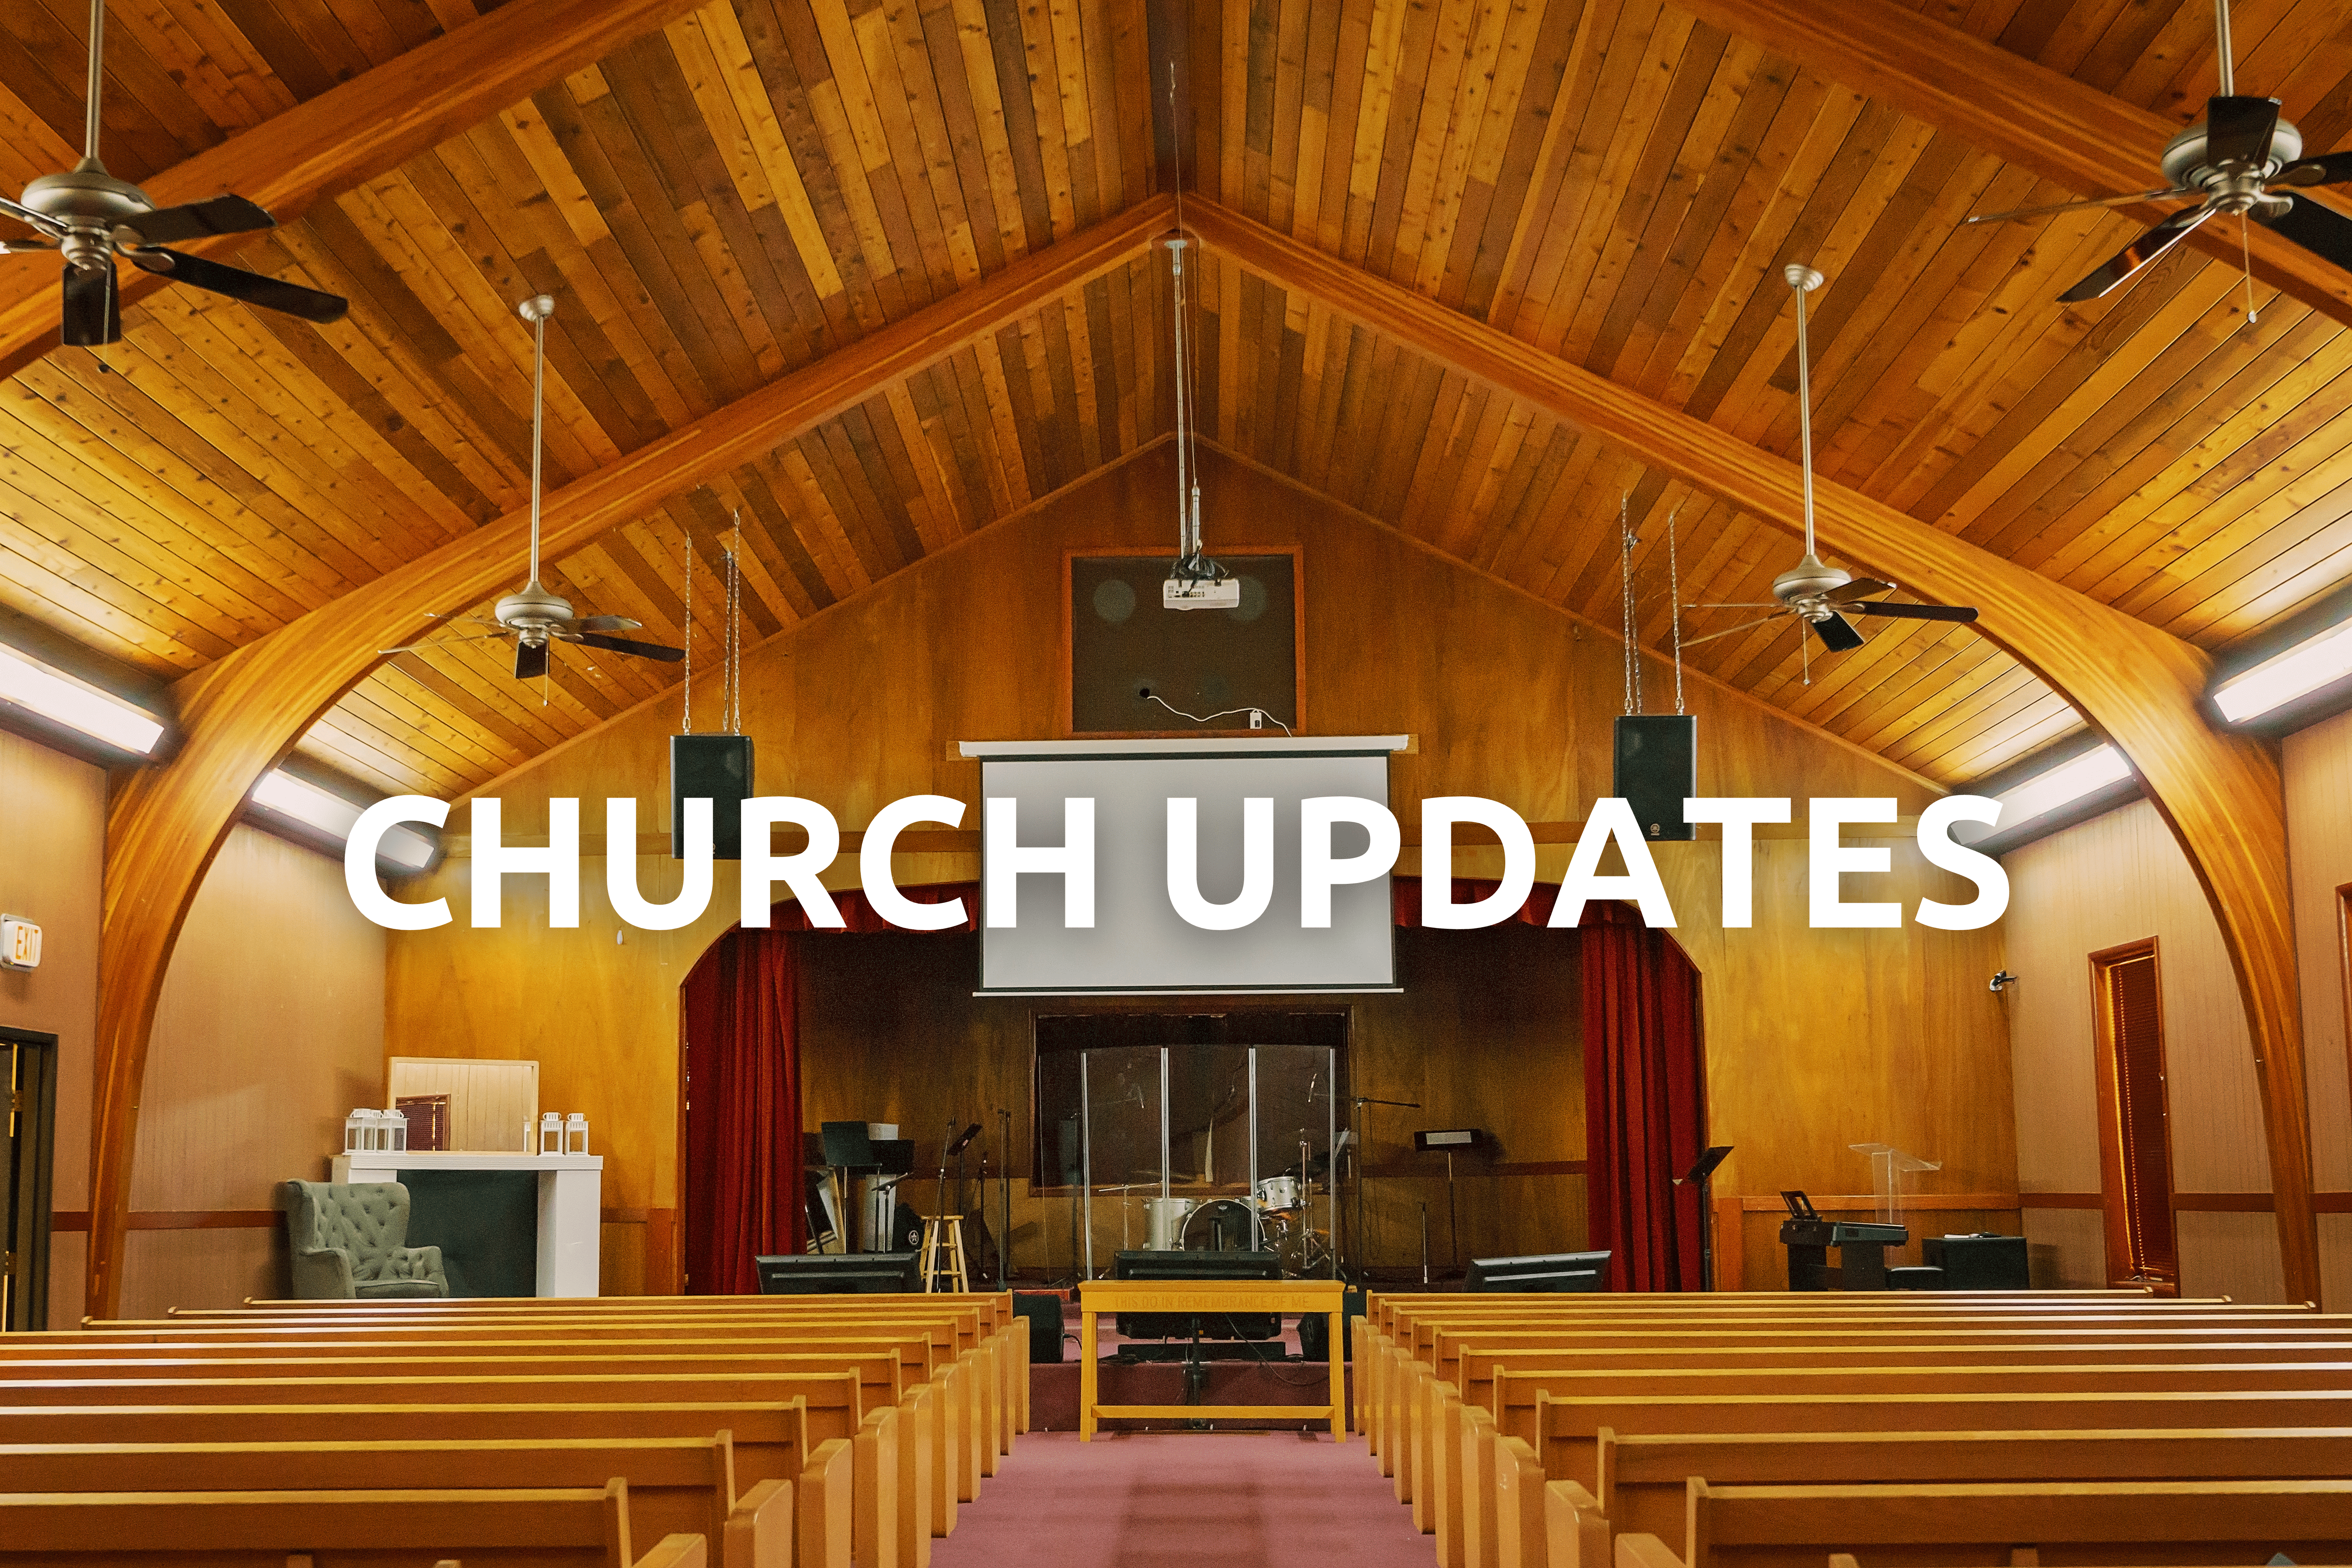 Church Updates